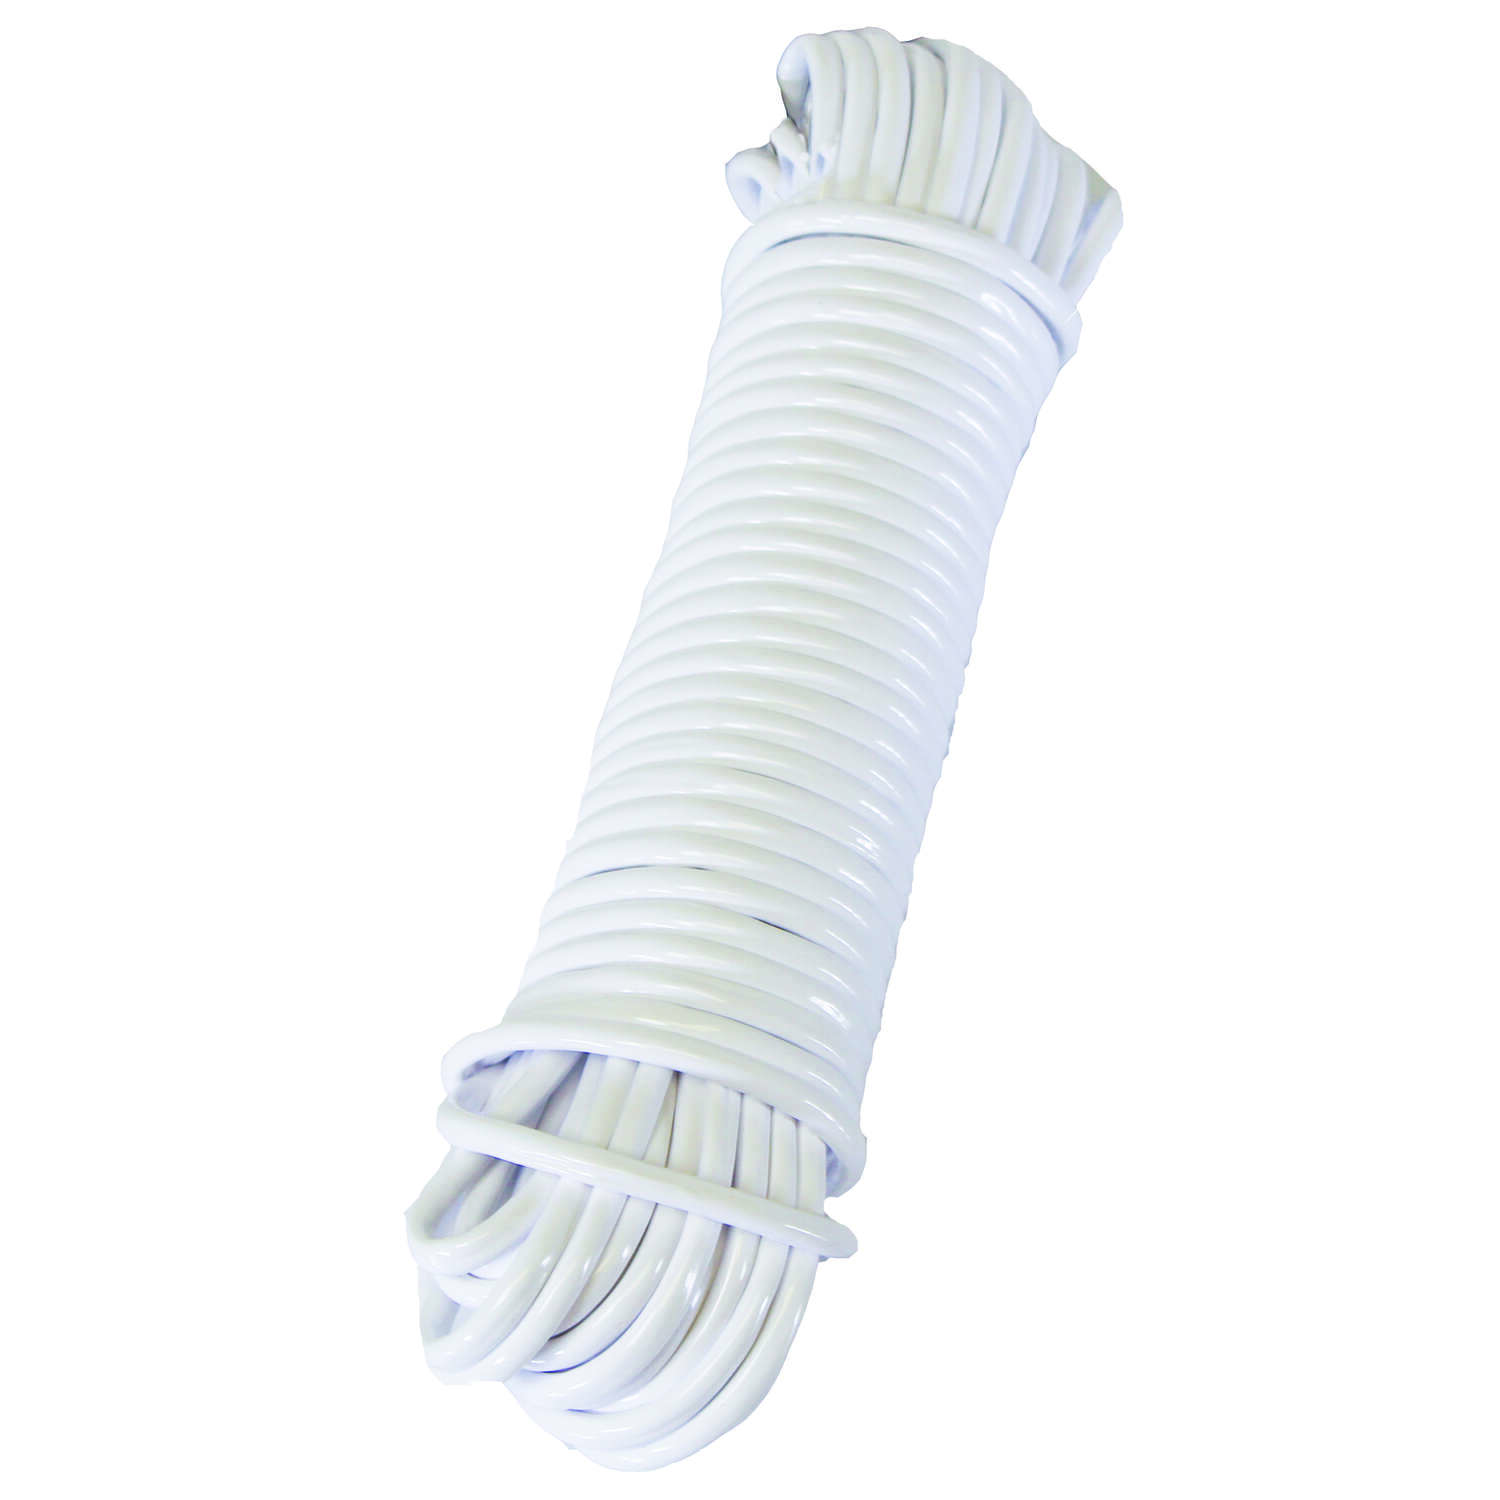 Ace  50 ft. L White  White  Plastic  Clothesline